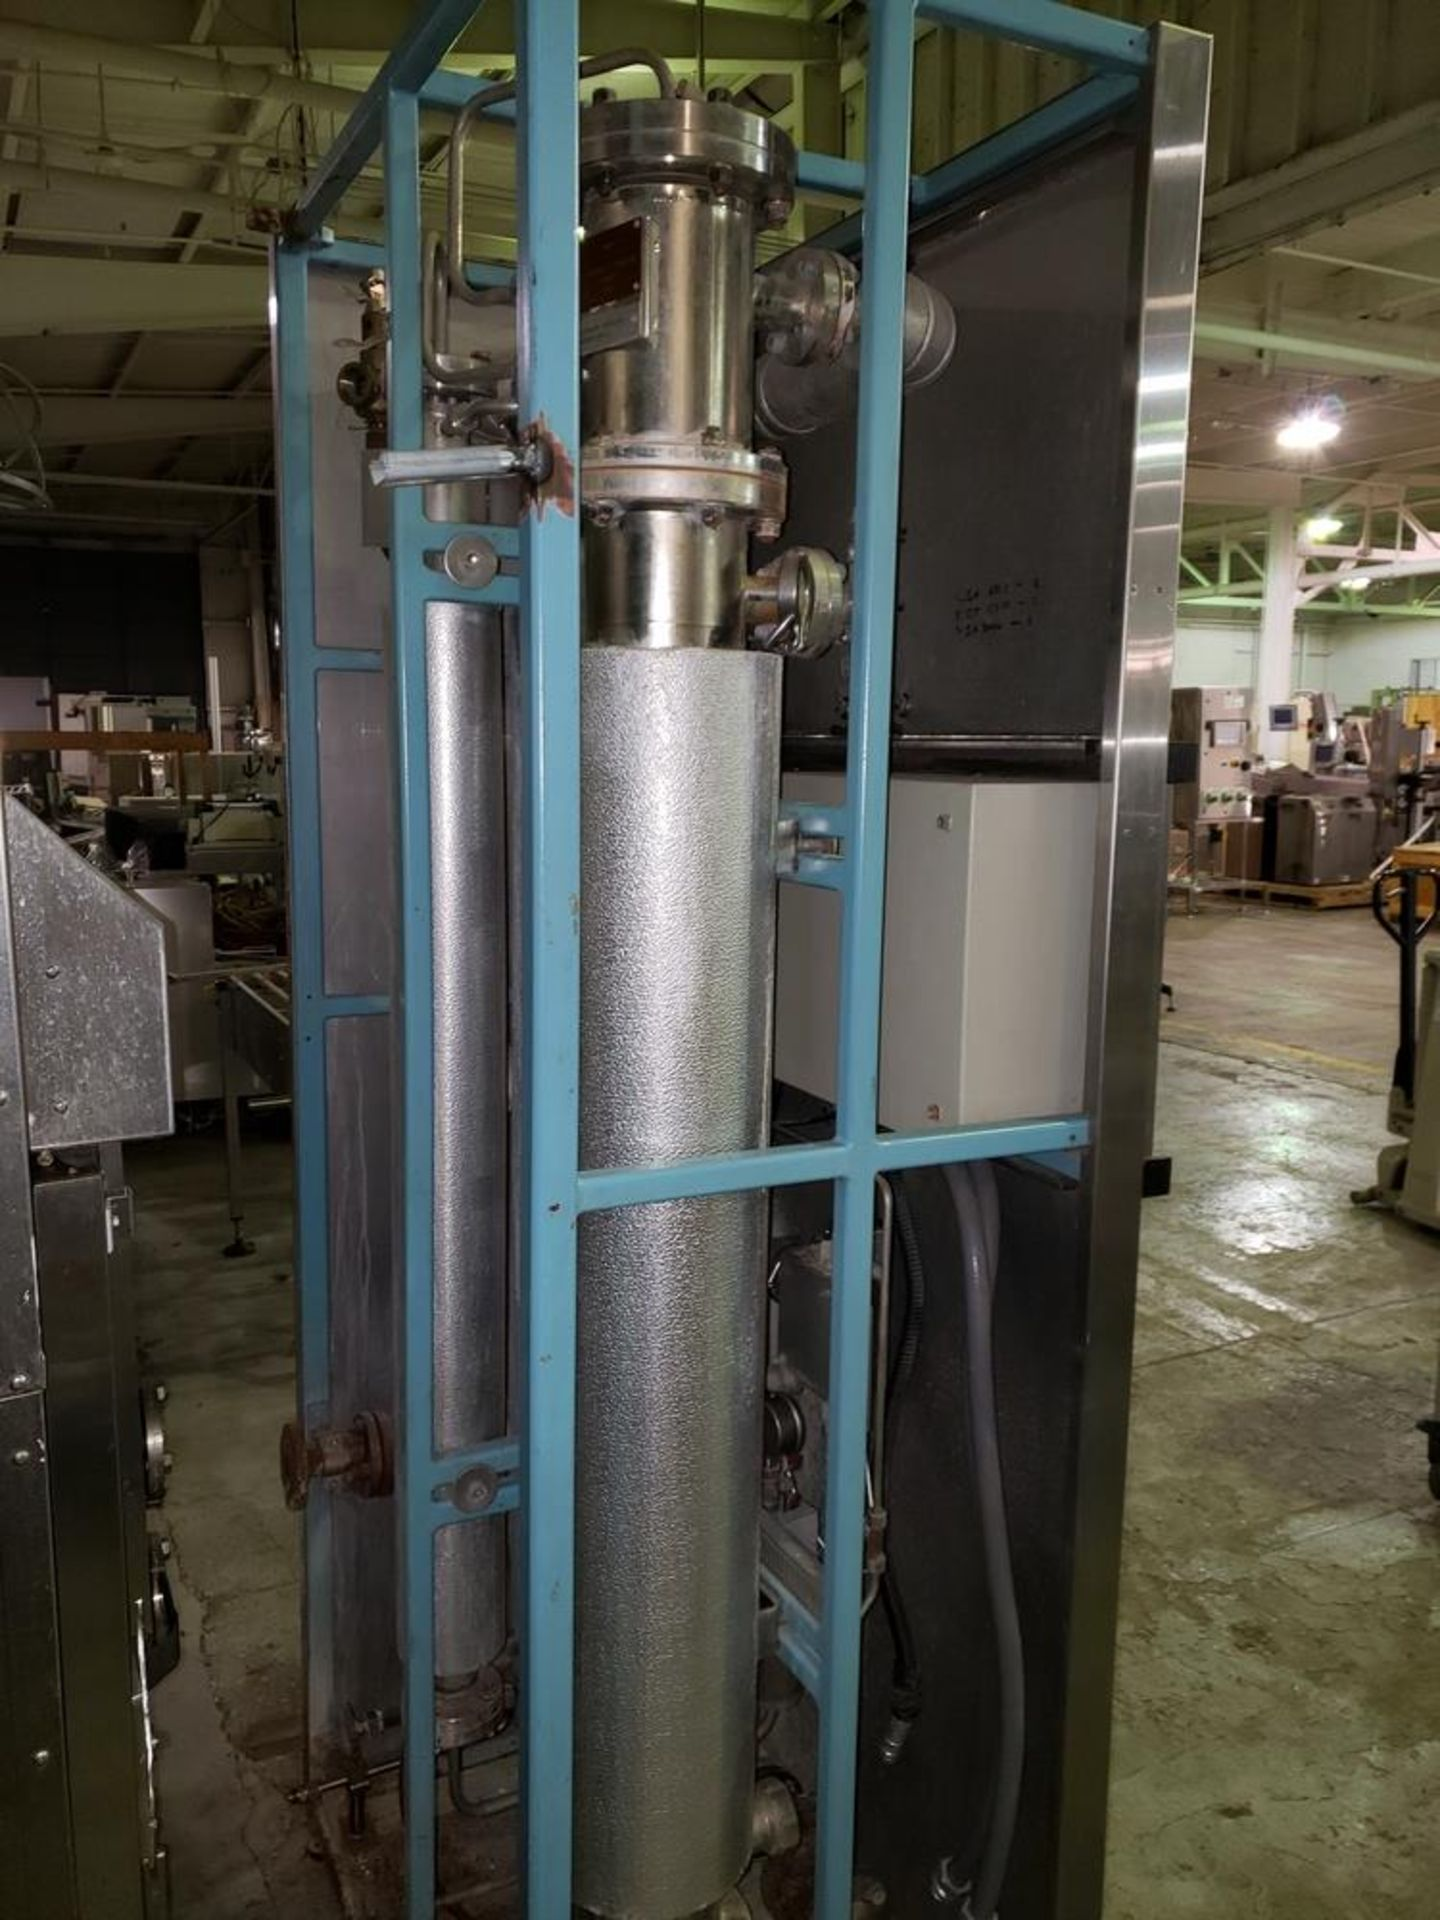 Lot 32 - Finn Aqua single effect WFI still, model 200-H-1, single effect with heat exchanger, rated 116 psi